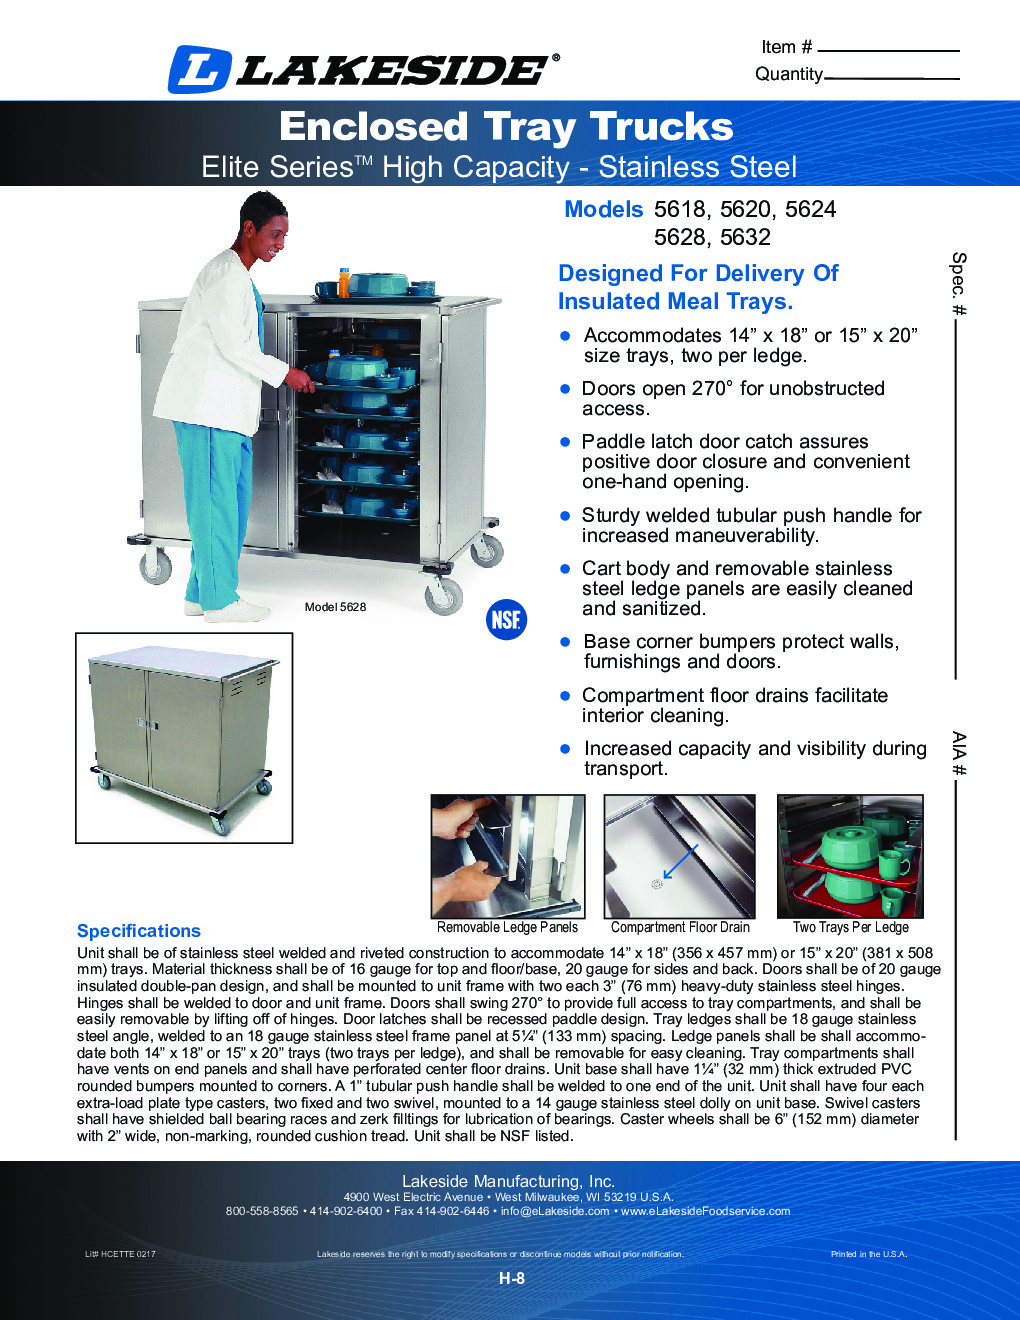 Lakeside 5628 Meal Tray Delivery Cabinet